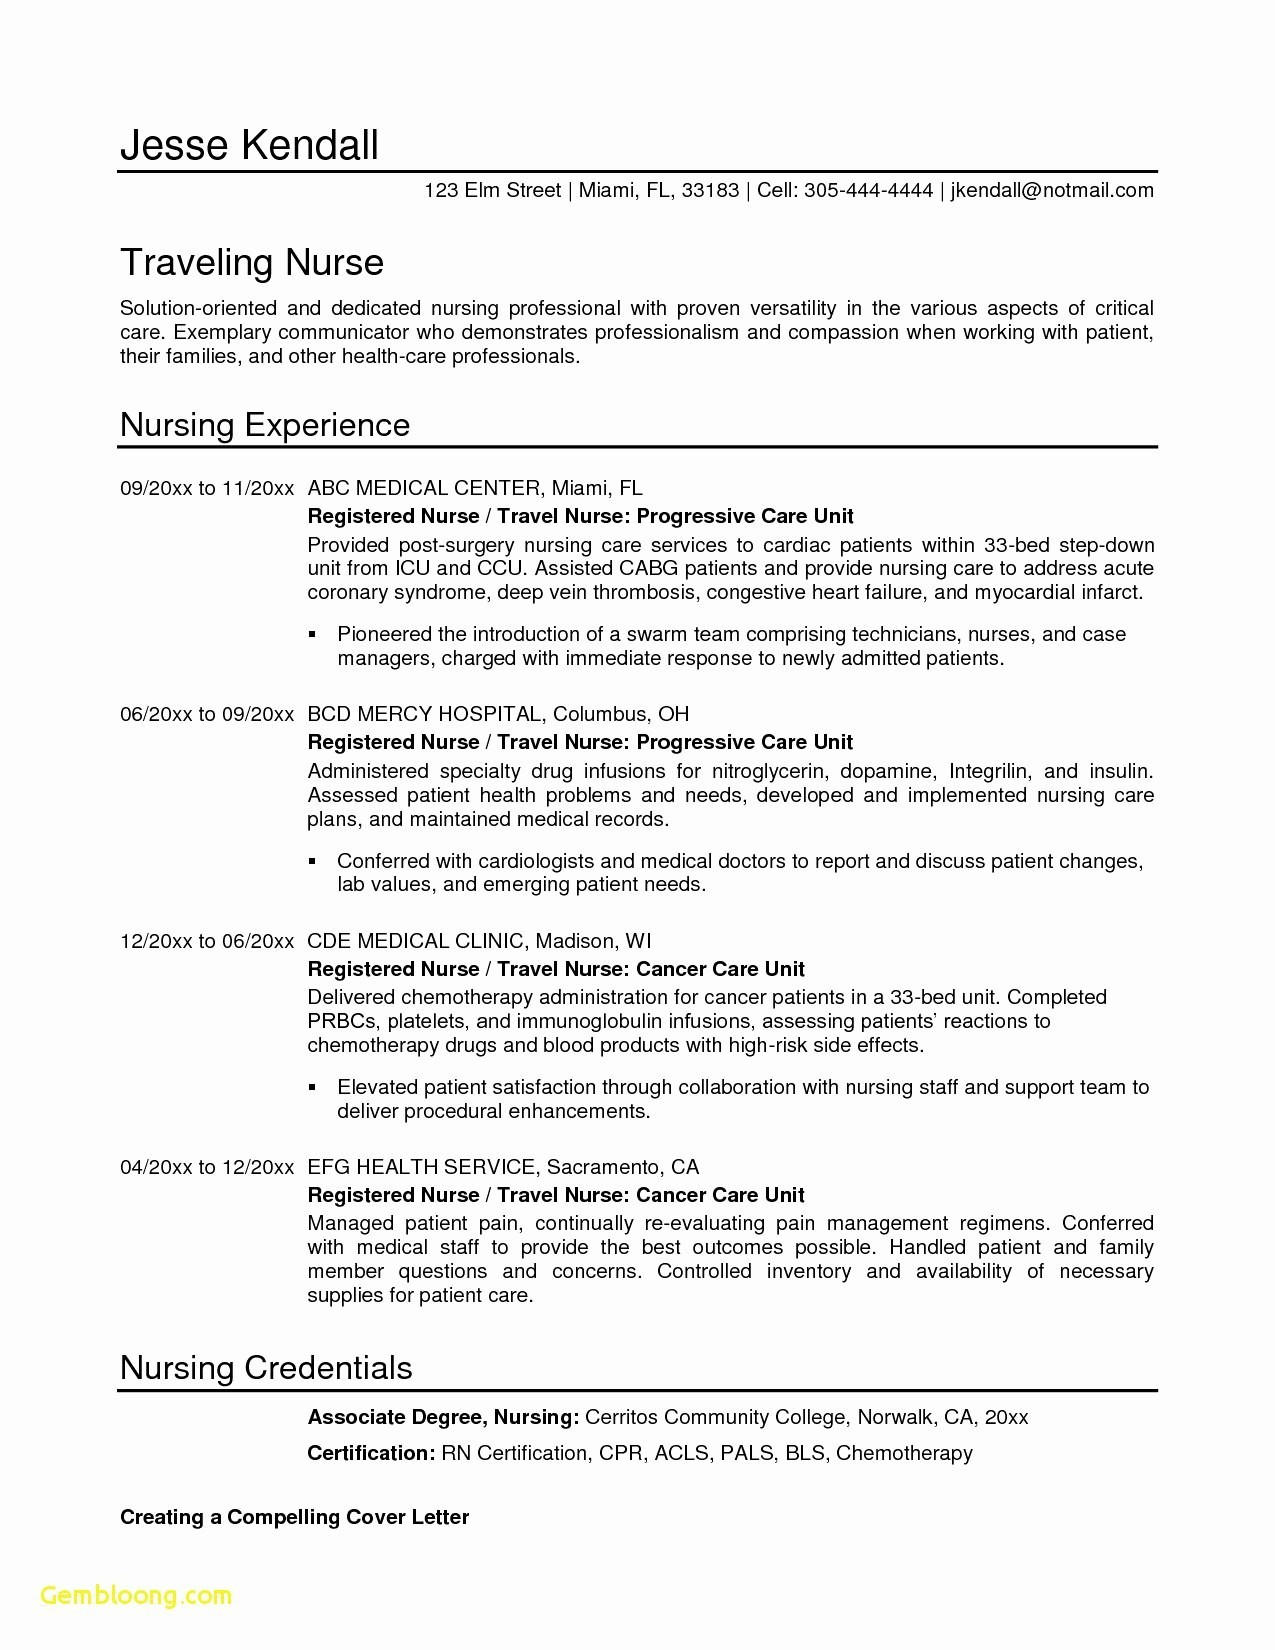 Nursing Resume Template Microsoft Word - 24 New Free Printable Resume Templates Microsoft Word